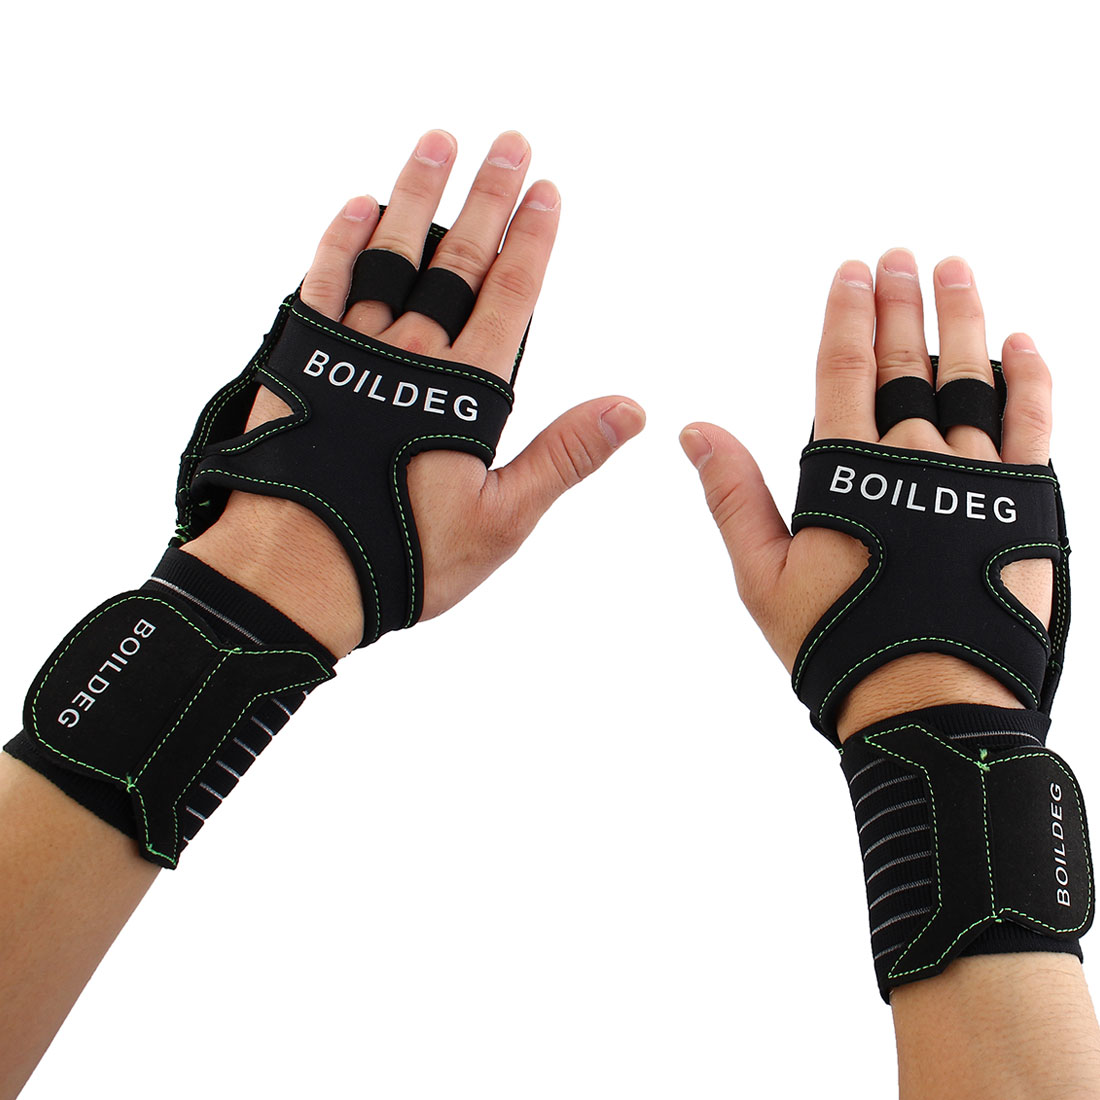 BOILDEG Authorized Unisex Sports Training Workout Mittens Wear-resisting Palm Support Fitness Gloves Green L Pair